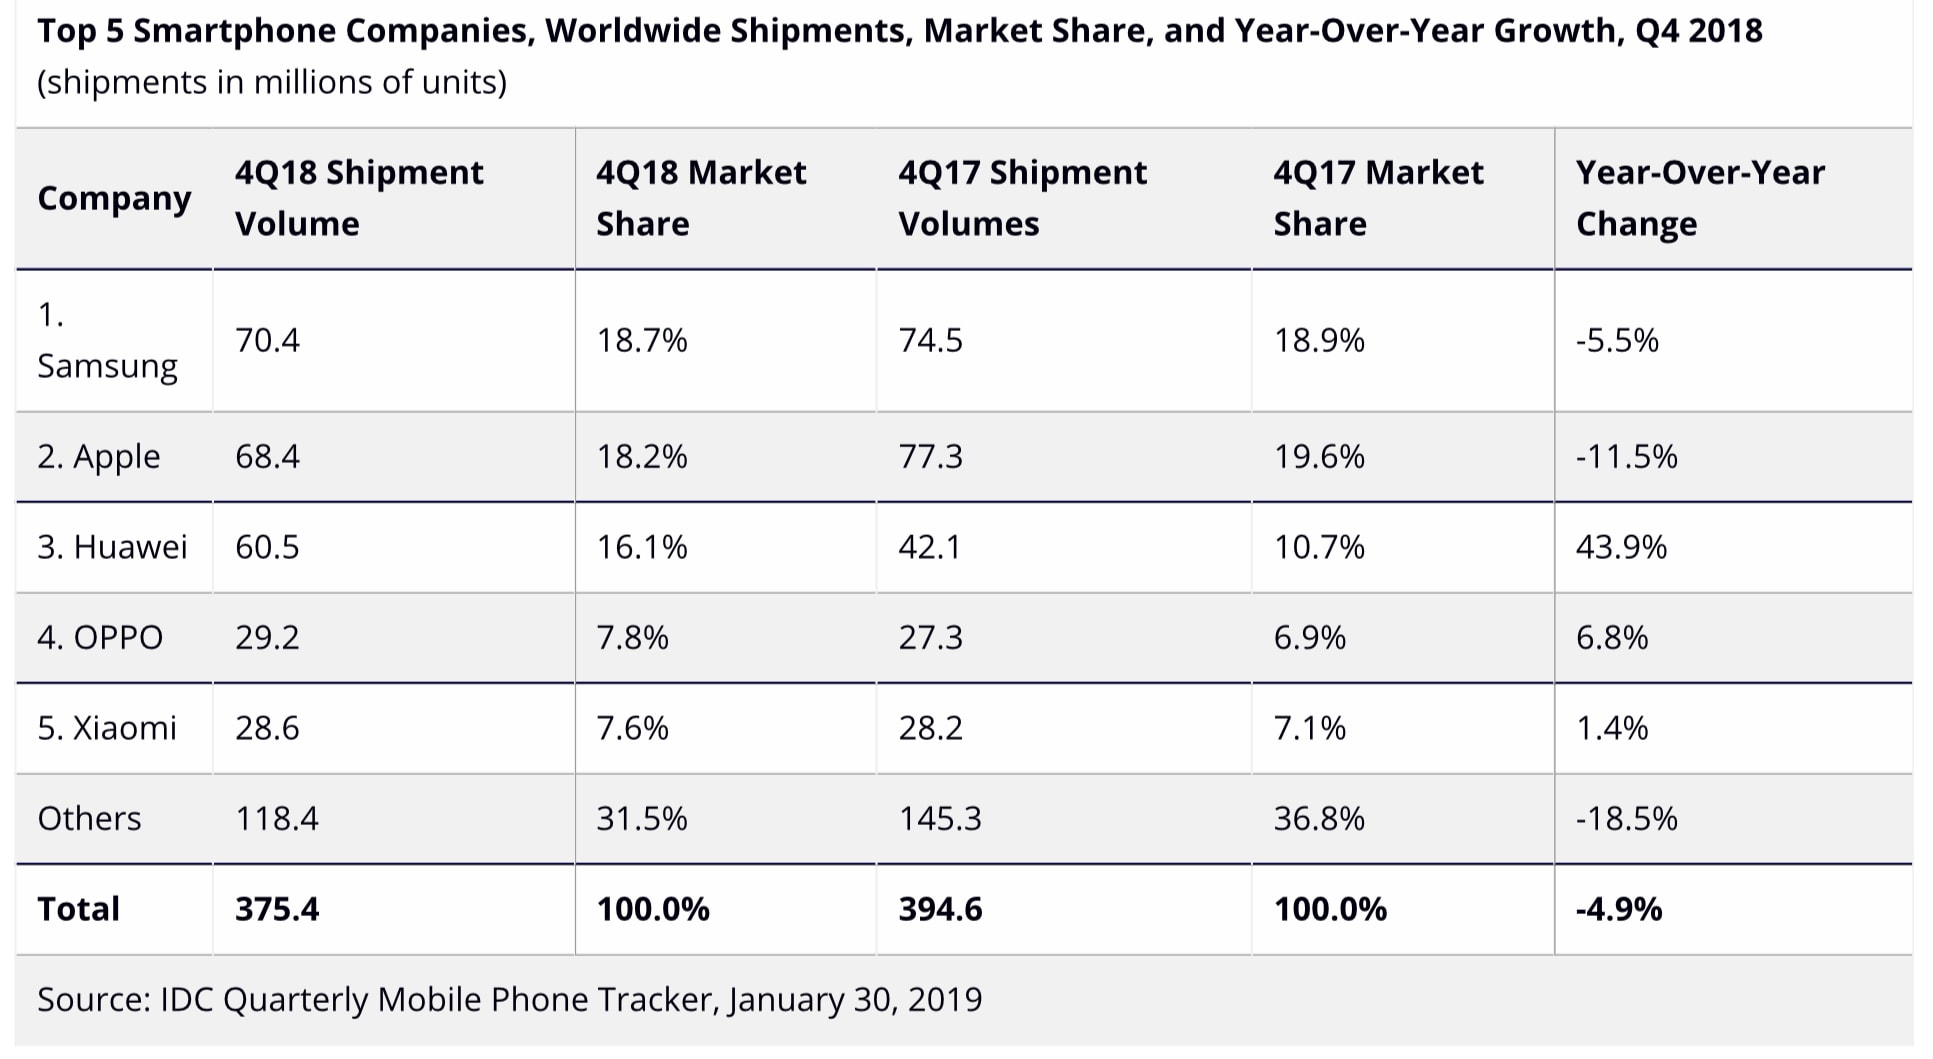 IDC's estimated Q4 2018 smartphone shipments for the top 5 companies.